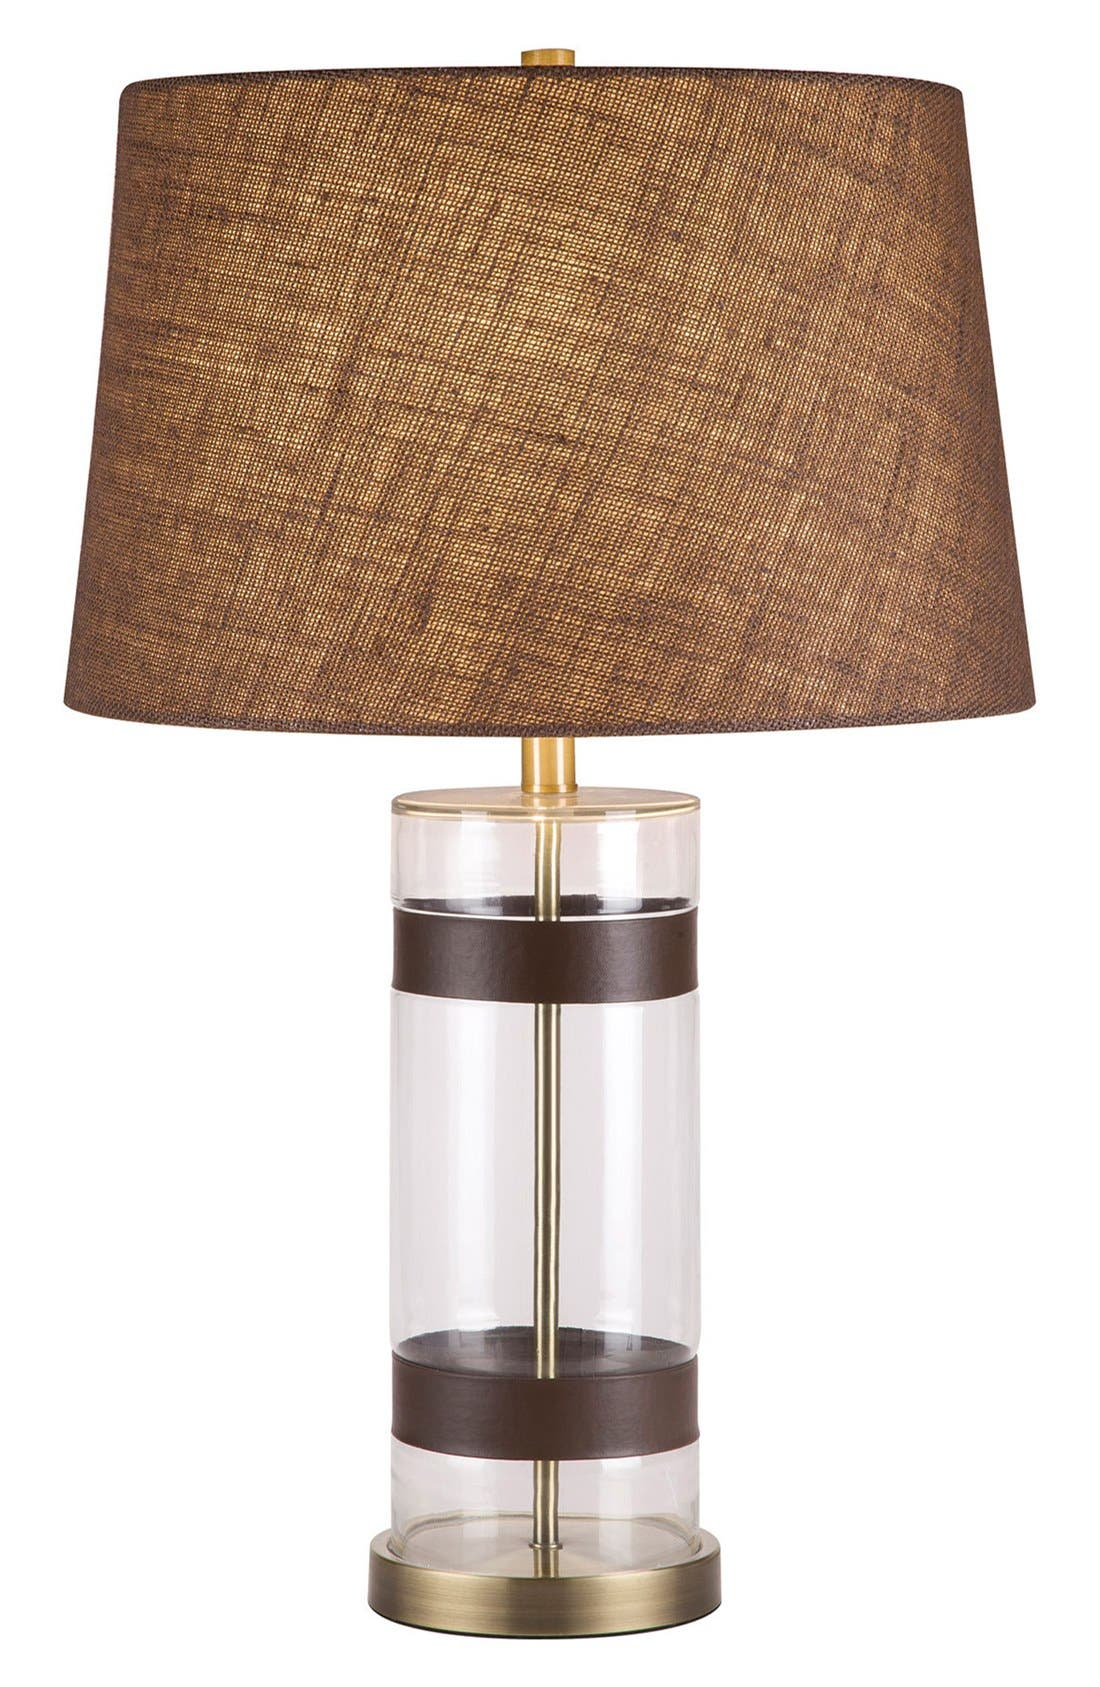 Alternate Image 1 Selected - JAlexander Glass & Faux Leather Table Lamp